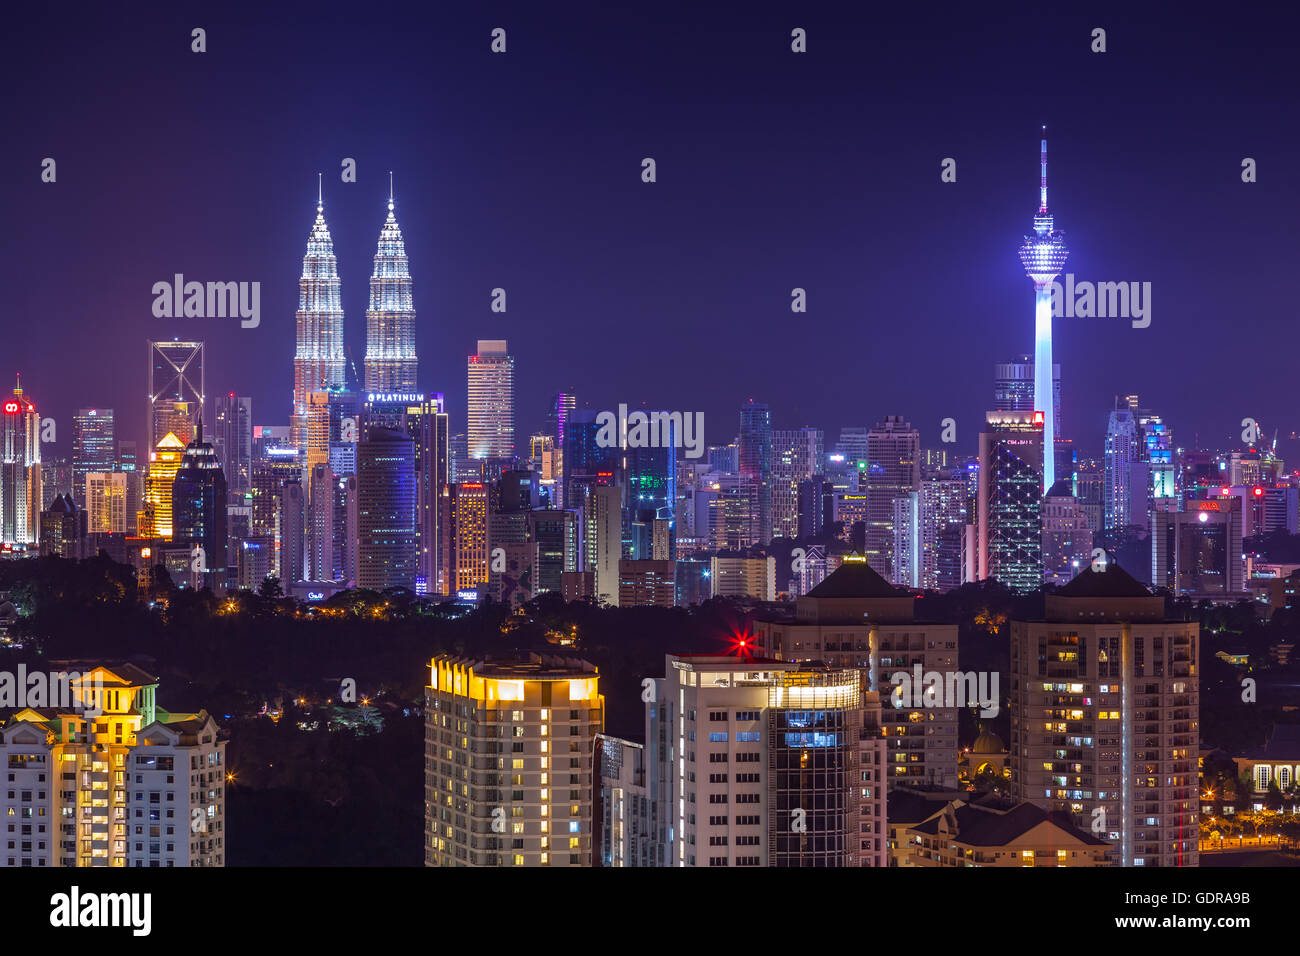 Kuala Lumpur city skyline vibrantly lit at dusk, viewed from west - Stock Image